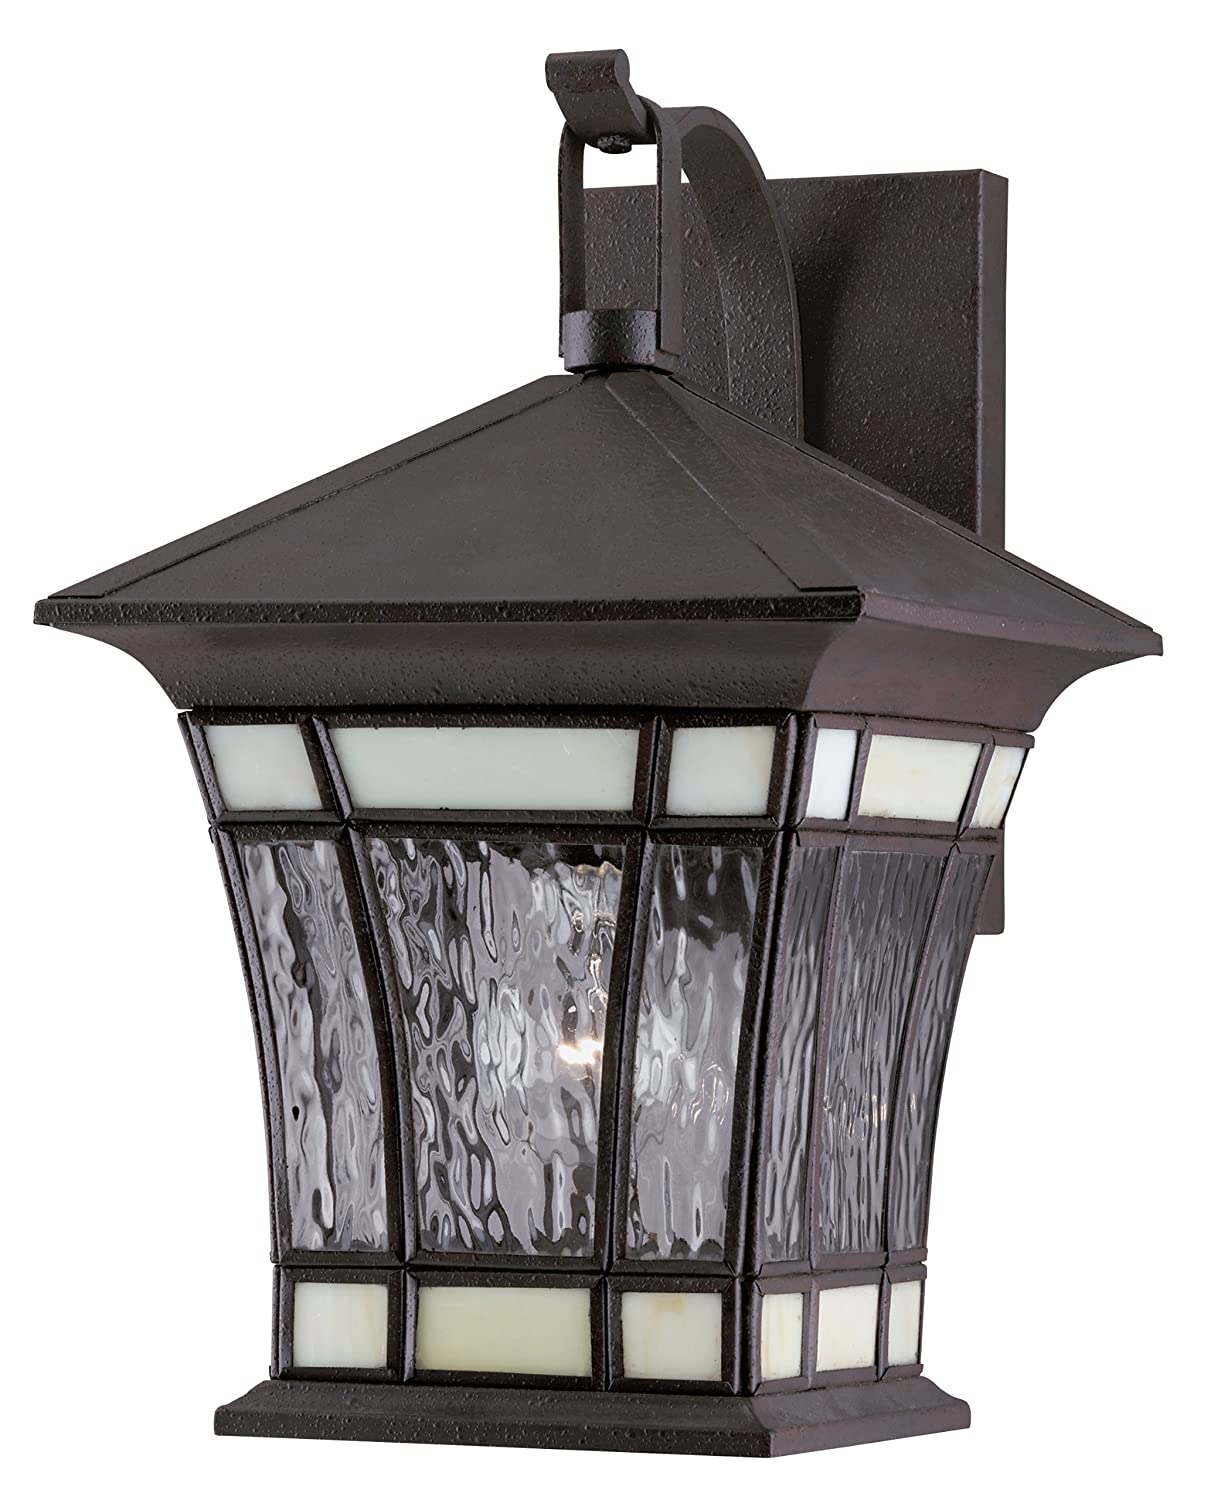 Westinghouse Lighting 6486500 One Light Exterior Wall Lantern  Textured  Rust Patina on Solid Brass and Steel with Water Glass and Tiffany Accents    Wall  Westinghouse Lighting 6486500 One Light Exterior Wall Lantern  . Menards Exterior Lighting. Home Design Ideas